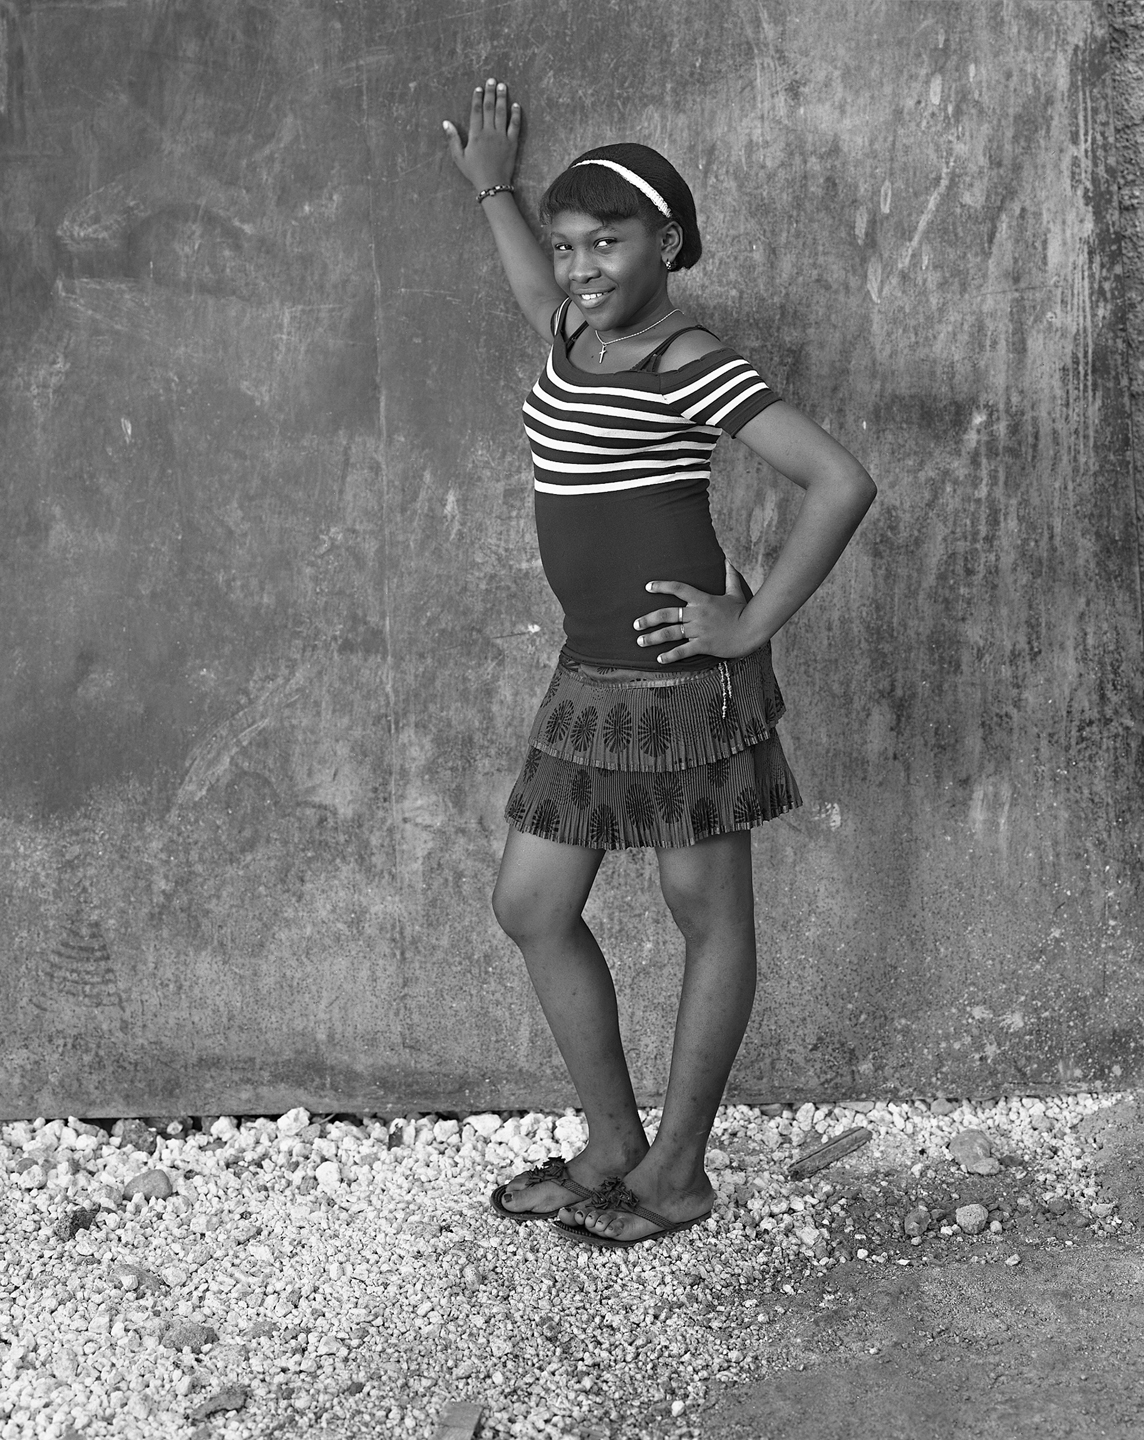 Camesuze Mondesir ( Her Pose ), Grand Rue, November 2011